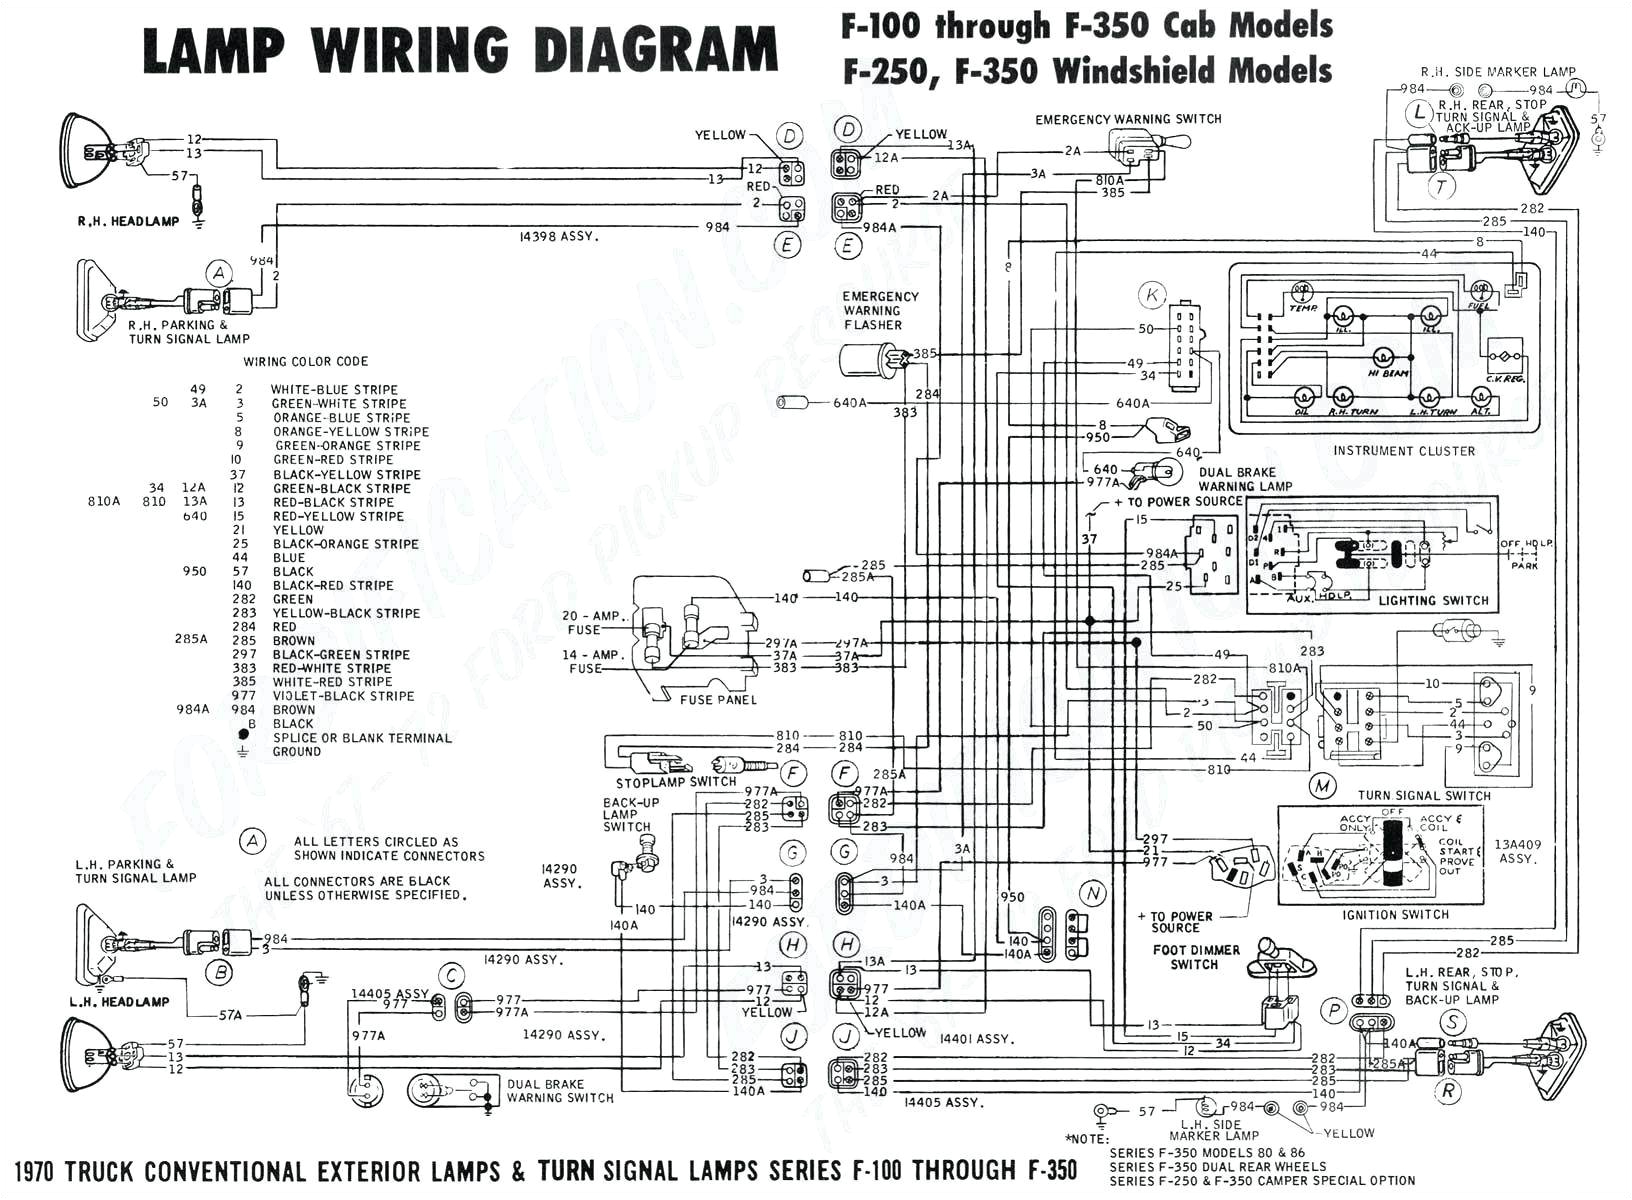 wiring diagram for rotary switch wiring diagram sample 3 light rotary switch wiring diagram wiring diagram